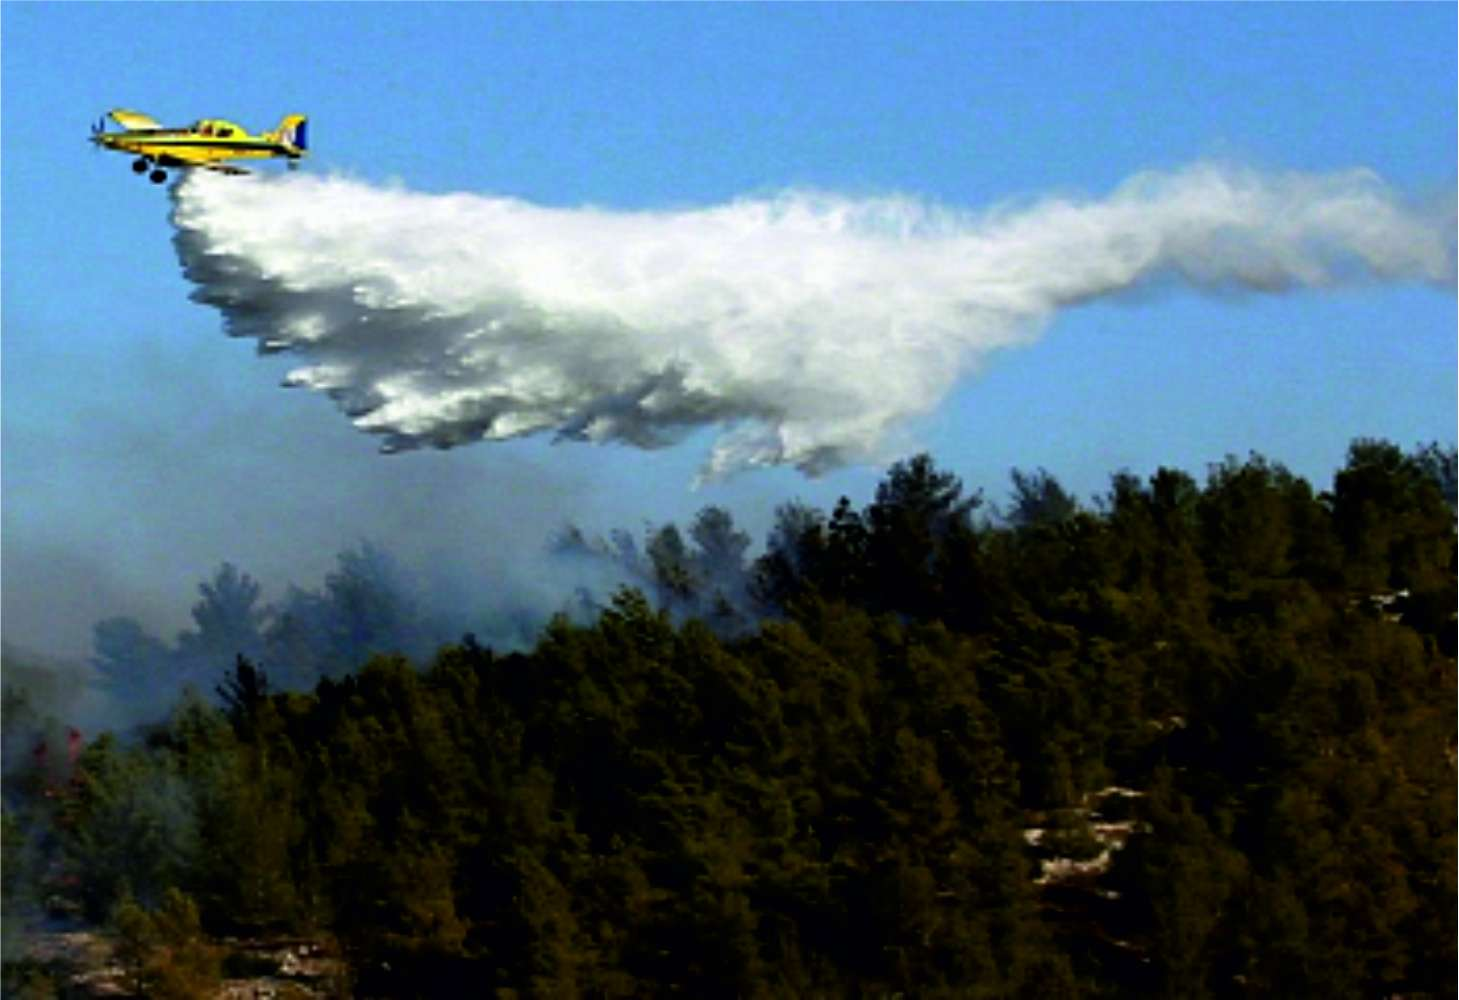 Turkey defeated wildfires